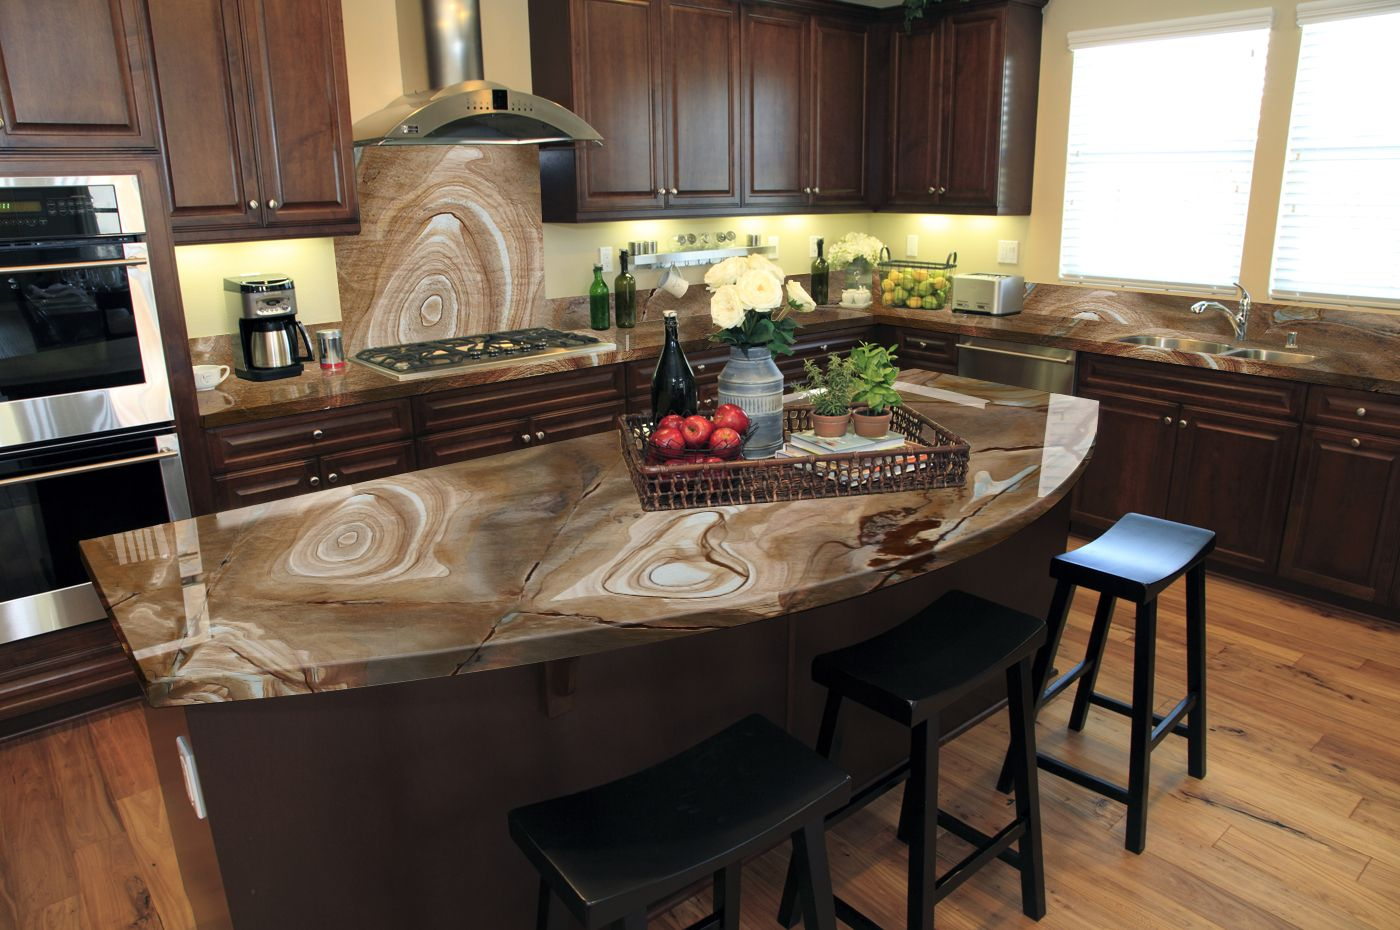 Are You Looking For An Aesthetically Pleasing Kitchen Design In Pompano Beach With Kitchen Island With Granite Top Custom Kitchen Island Curved Kitchen Island